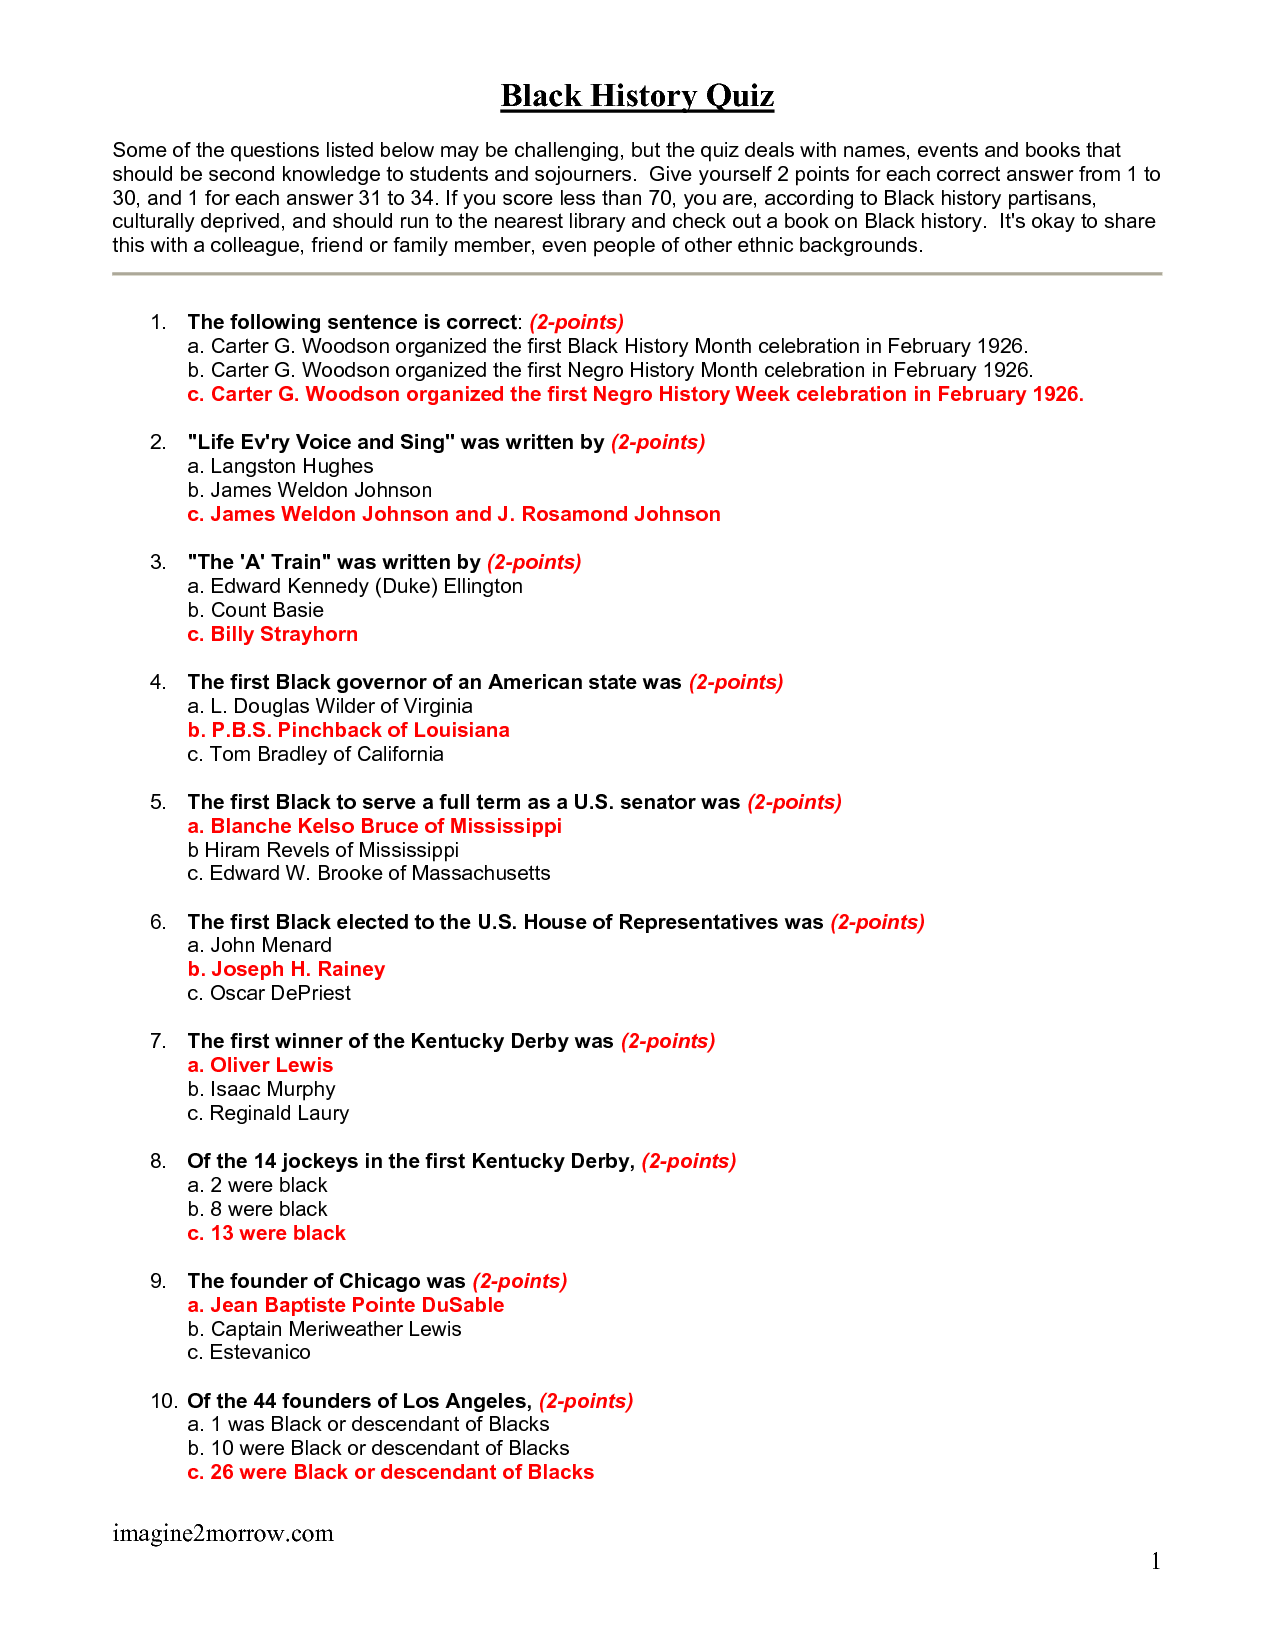 Black History Questions And Answers Printable